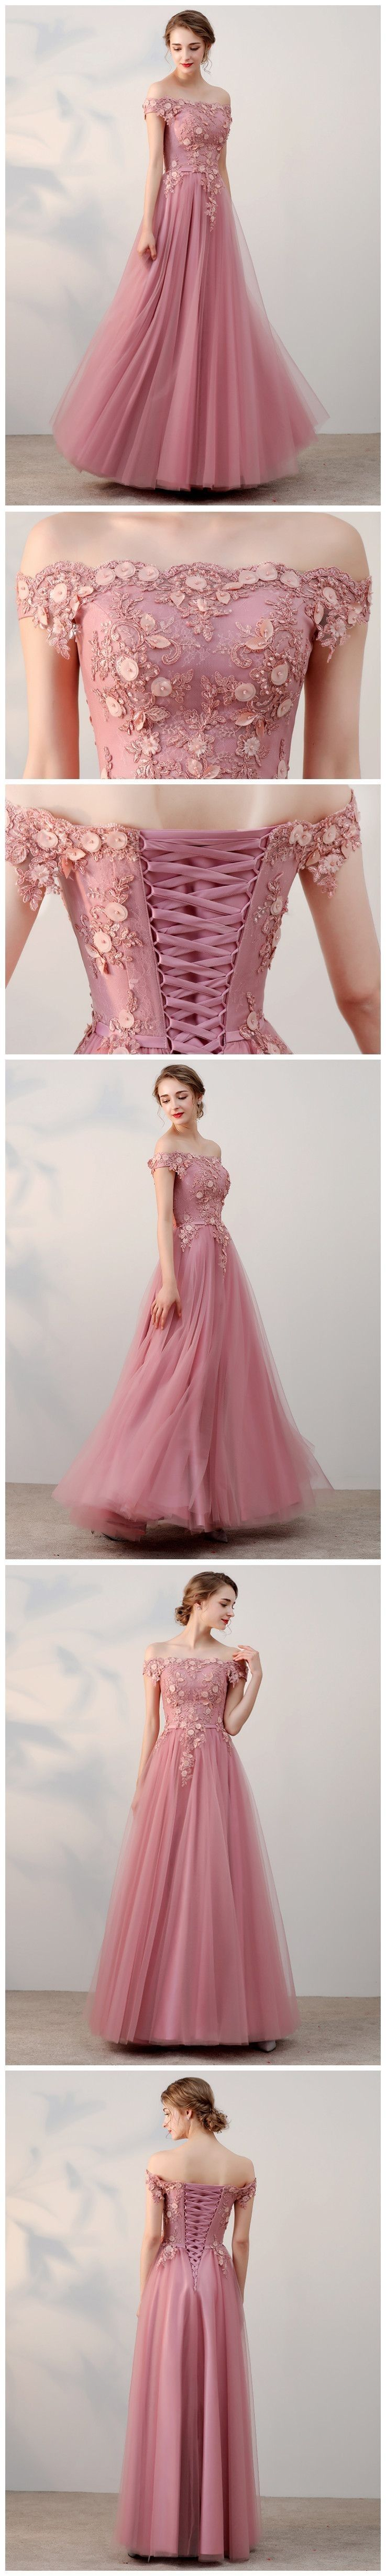 Pink applique #Tulle #Dresses #Gowns #Prom #PartyDress #EveningDress ...